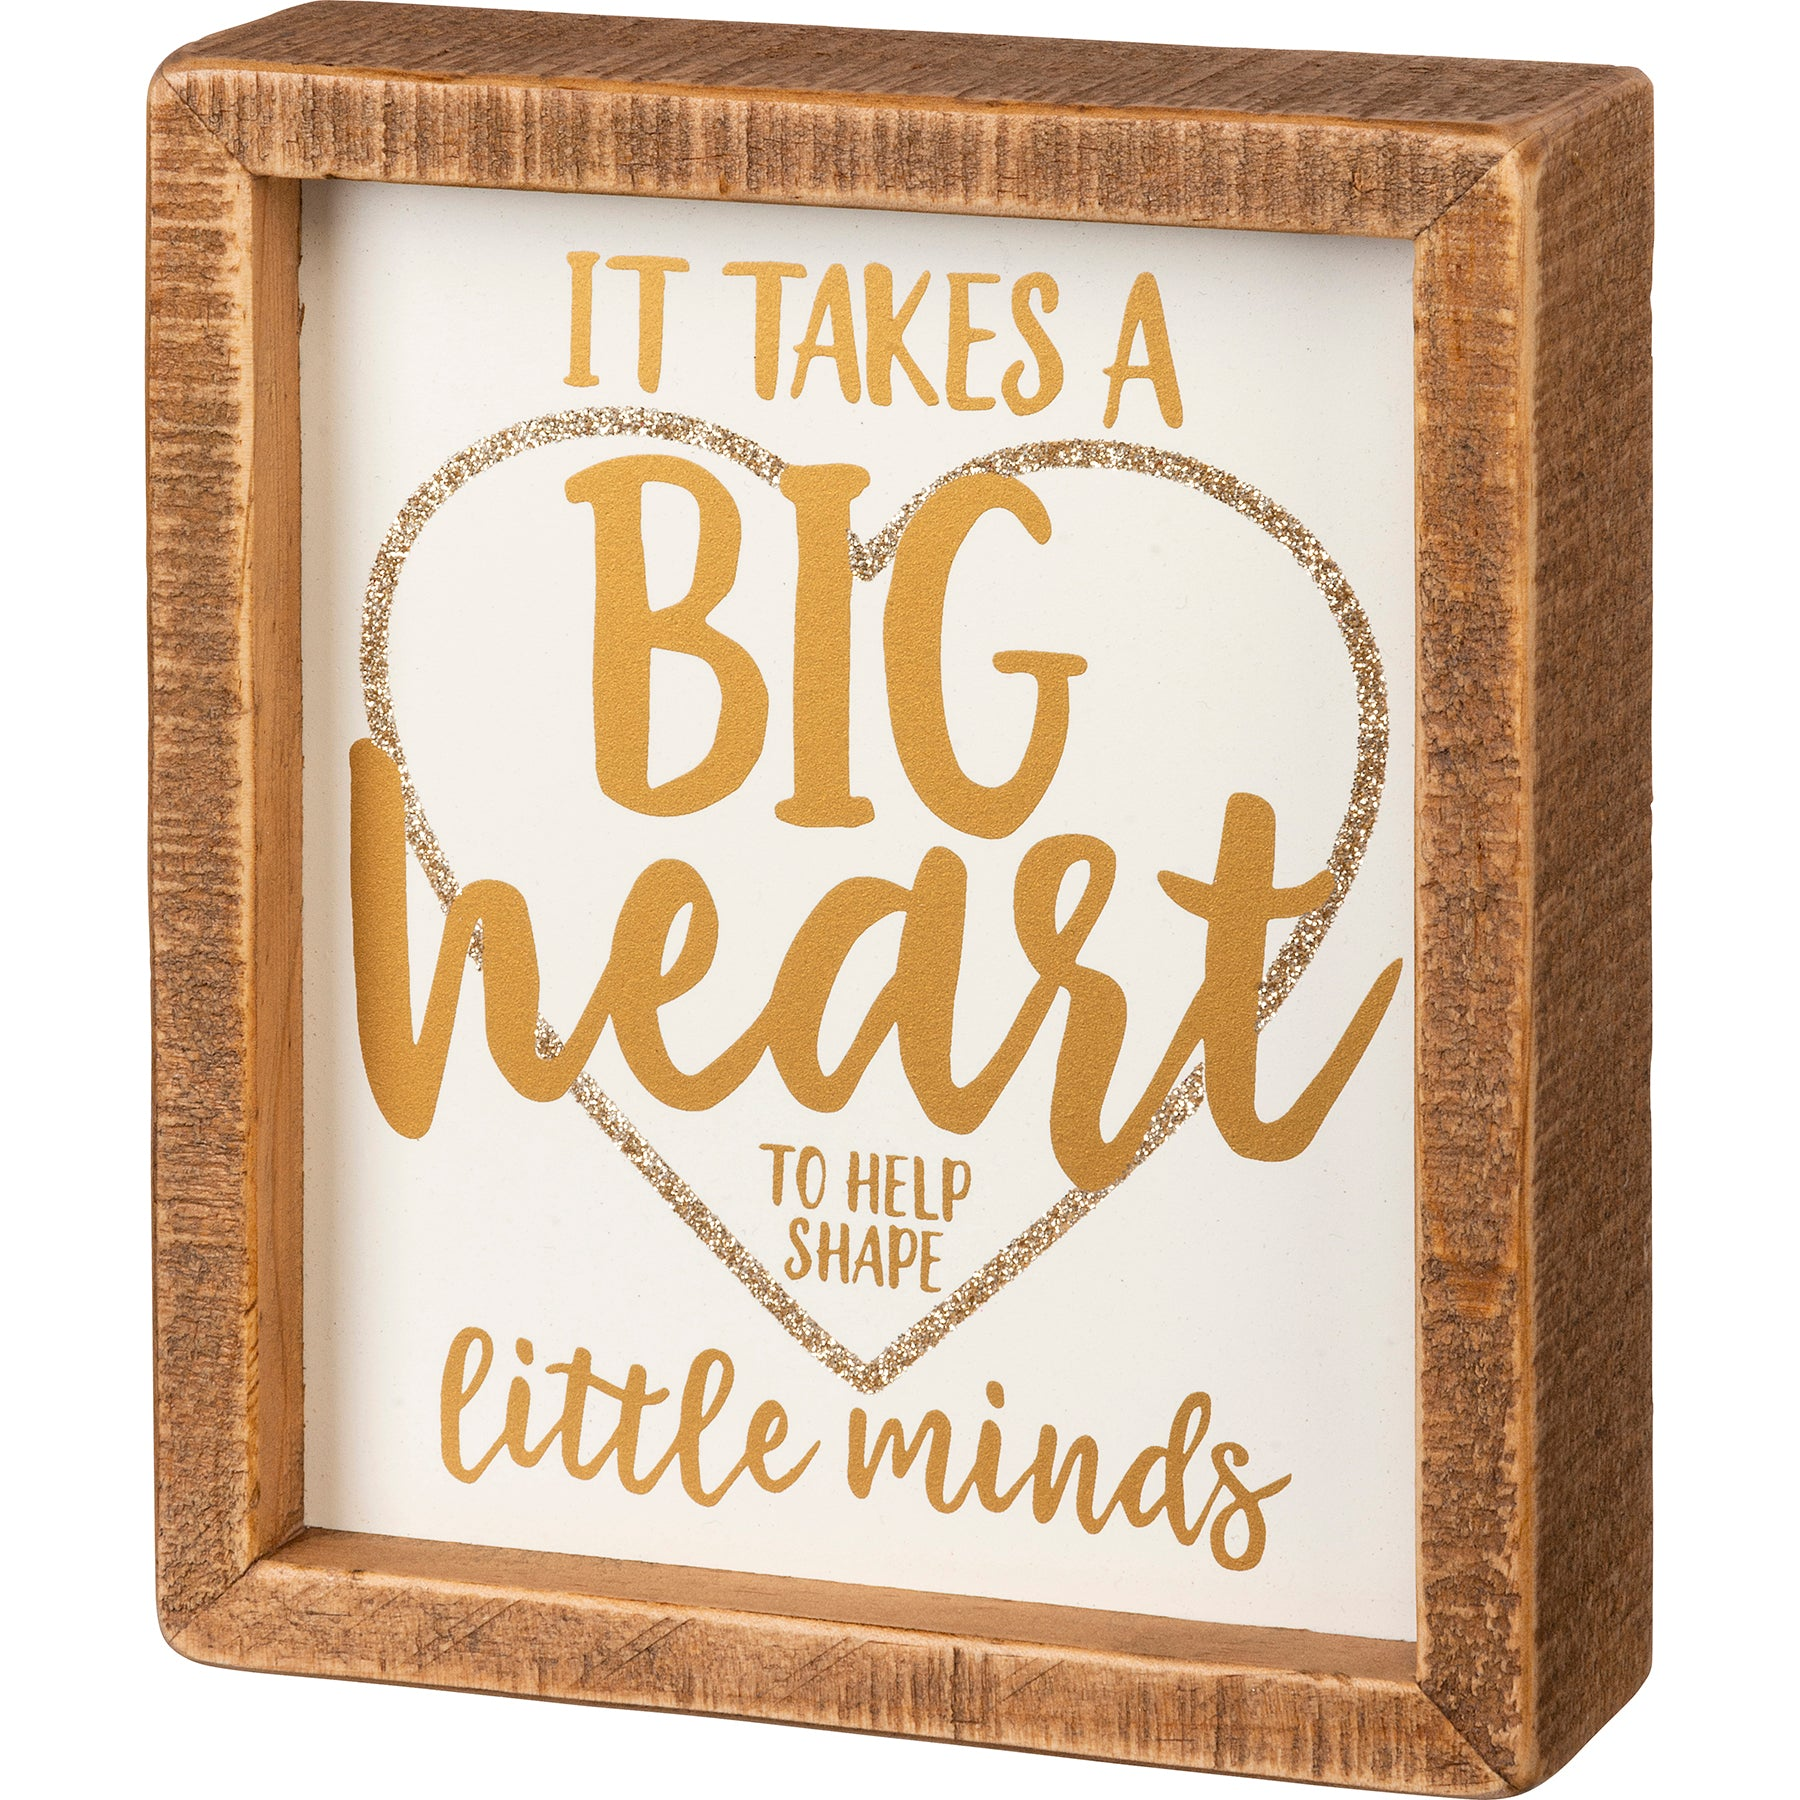 Inset Box Sign - It Takes A Big Heart